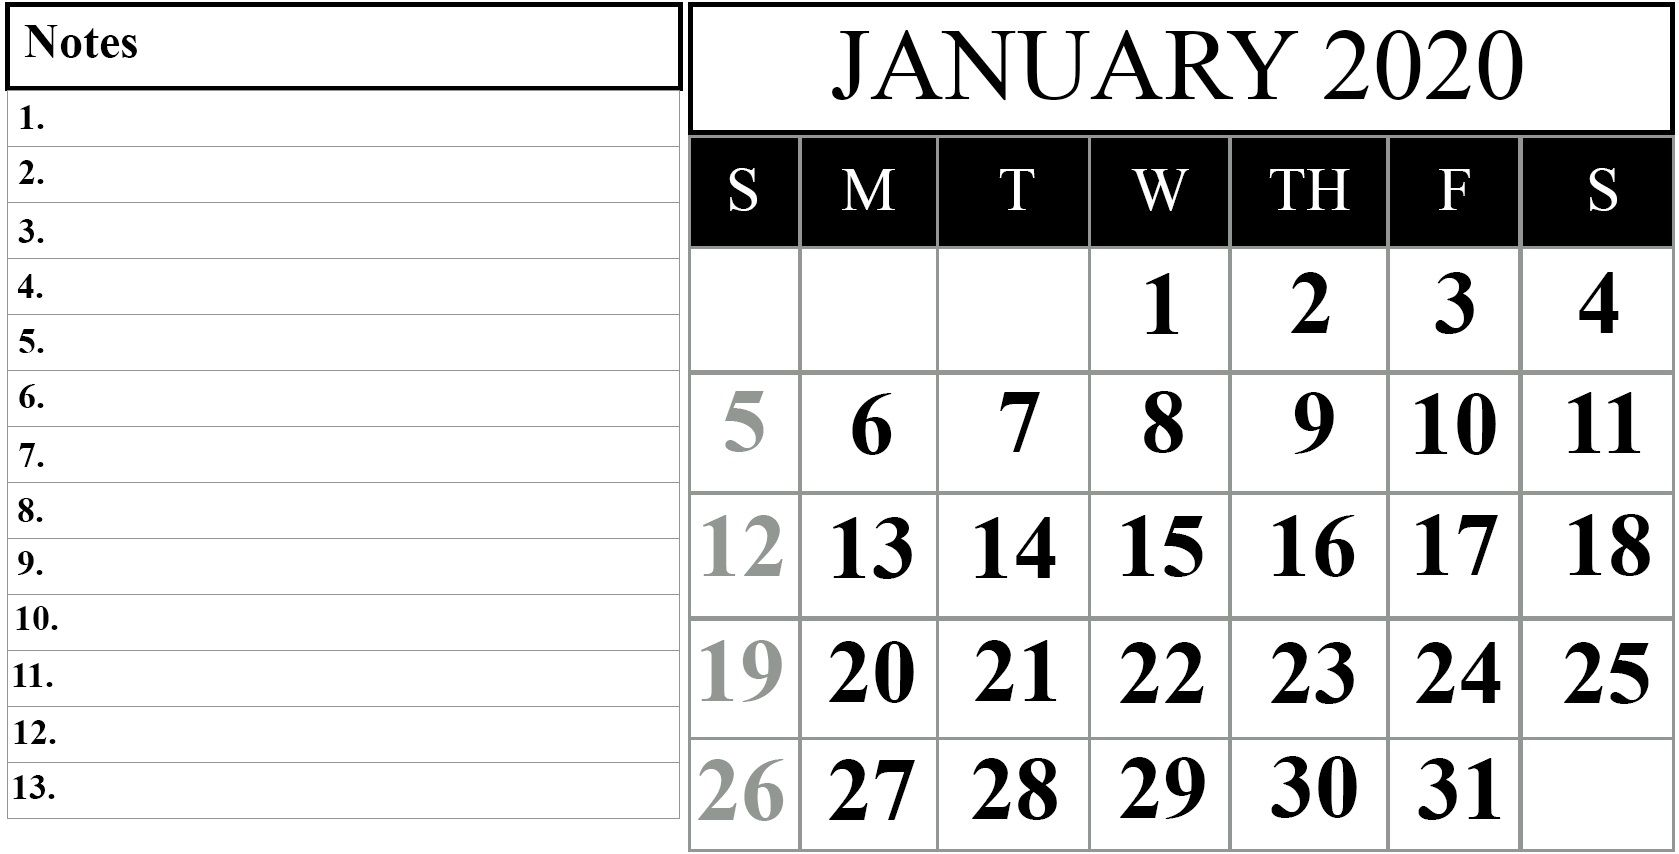 000 Remarkable 2020 Blank Calendar Template High Definition  Printable Monthly Word Downloadable With HolidayFull